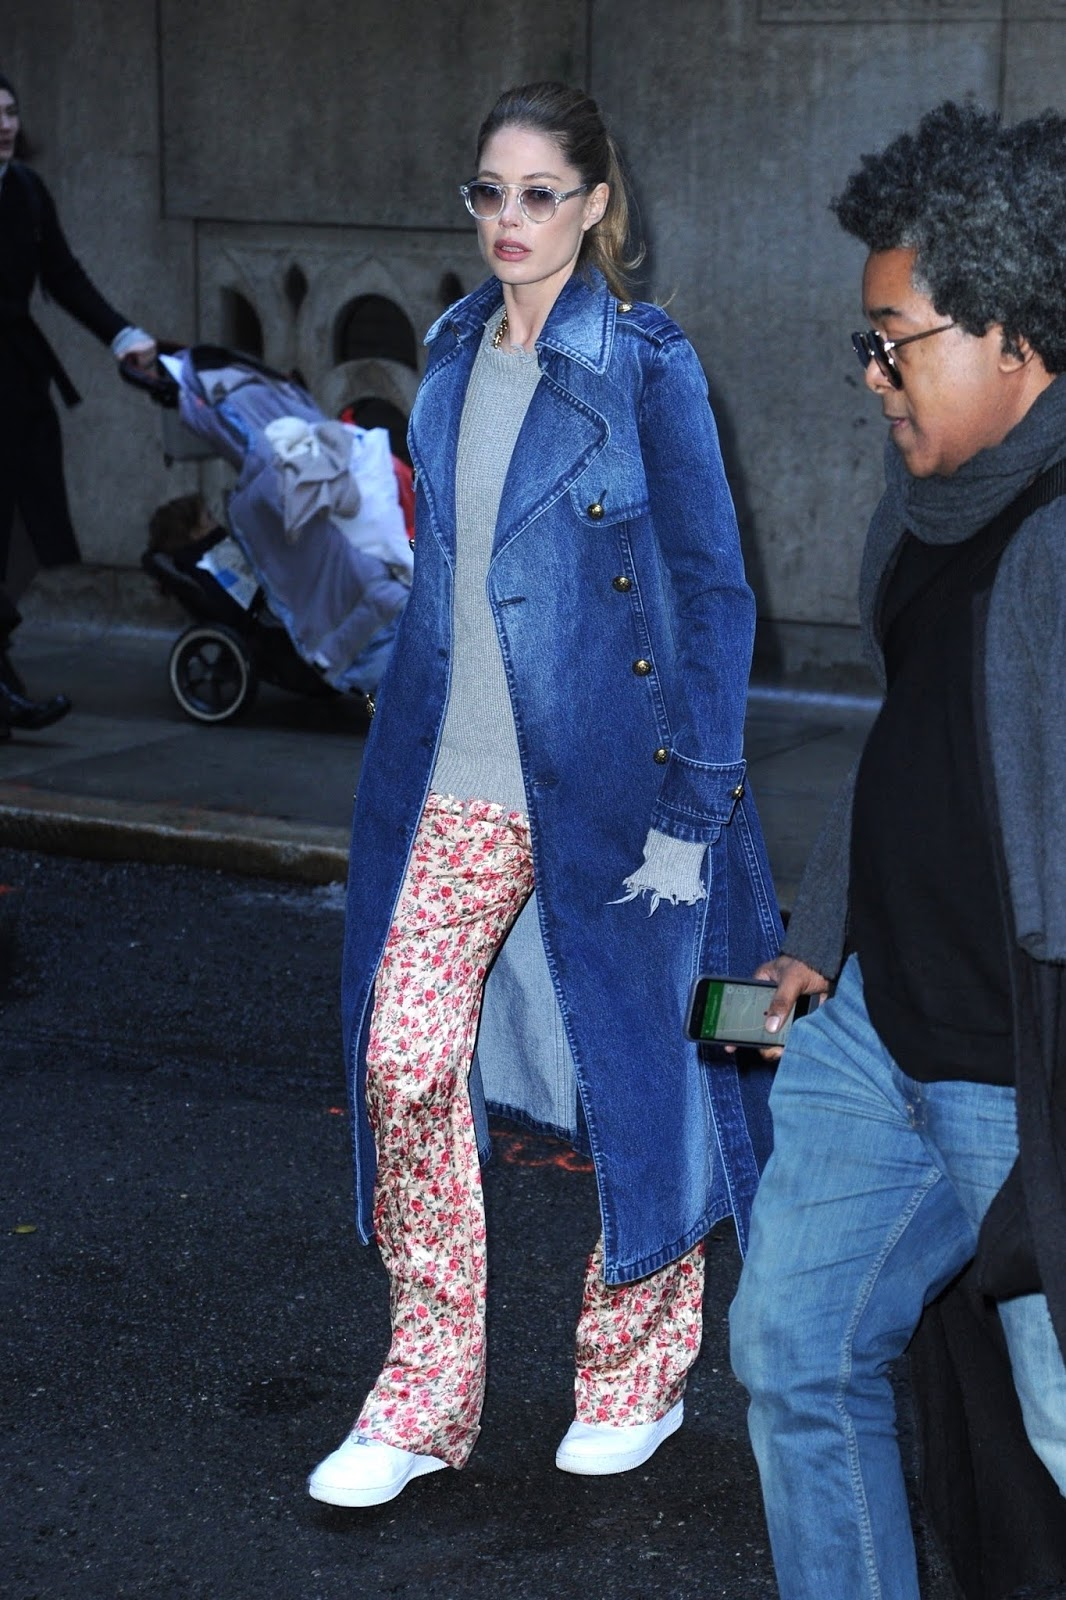 Doutzen Kroes - Outside Michael Kors fashion show during NYFW in NYC - 02/13/2019